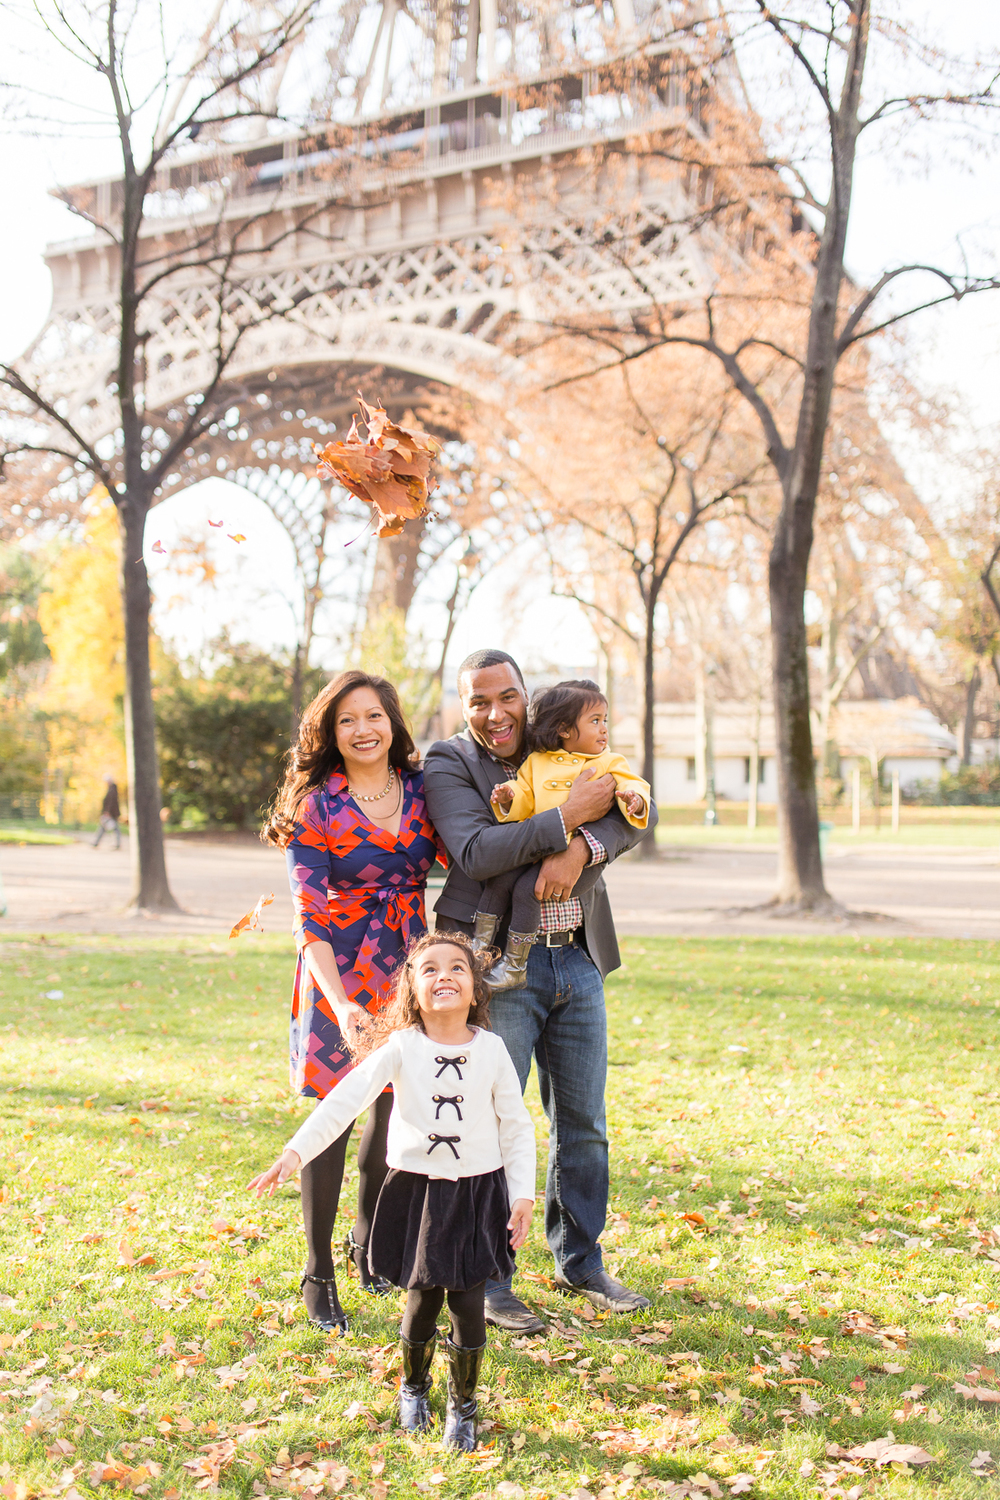 spring-fall-family-paris-eiffel-tower-photo-session-outfit-inspiratn-7